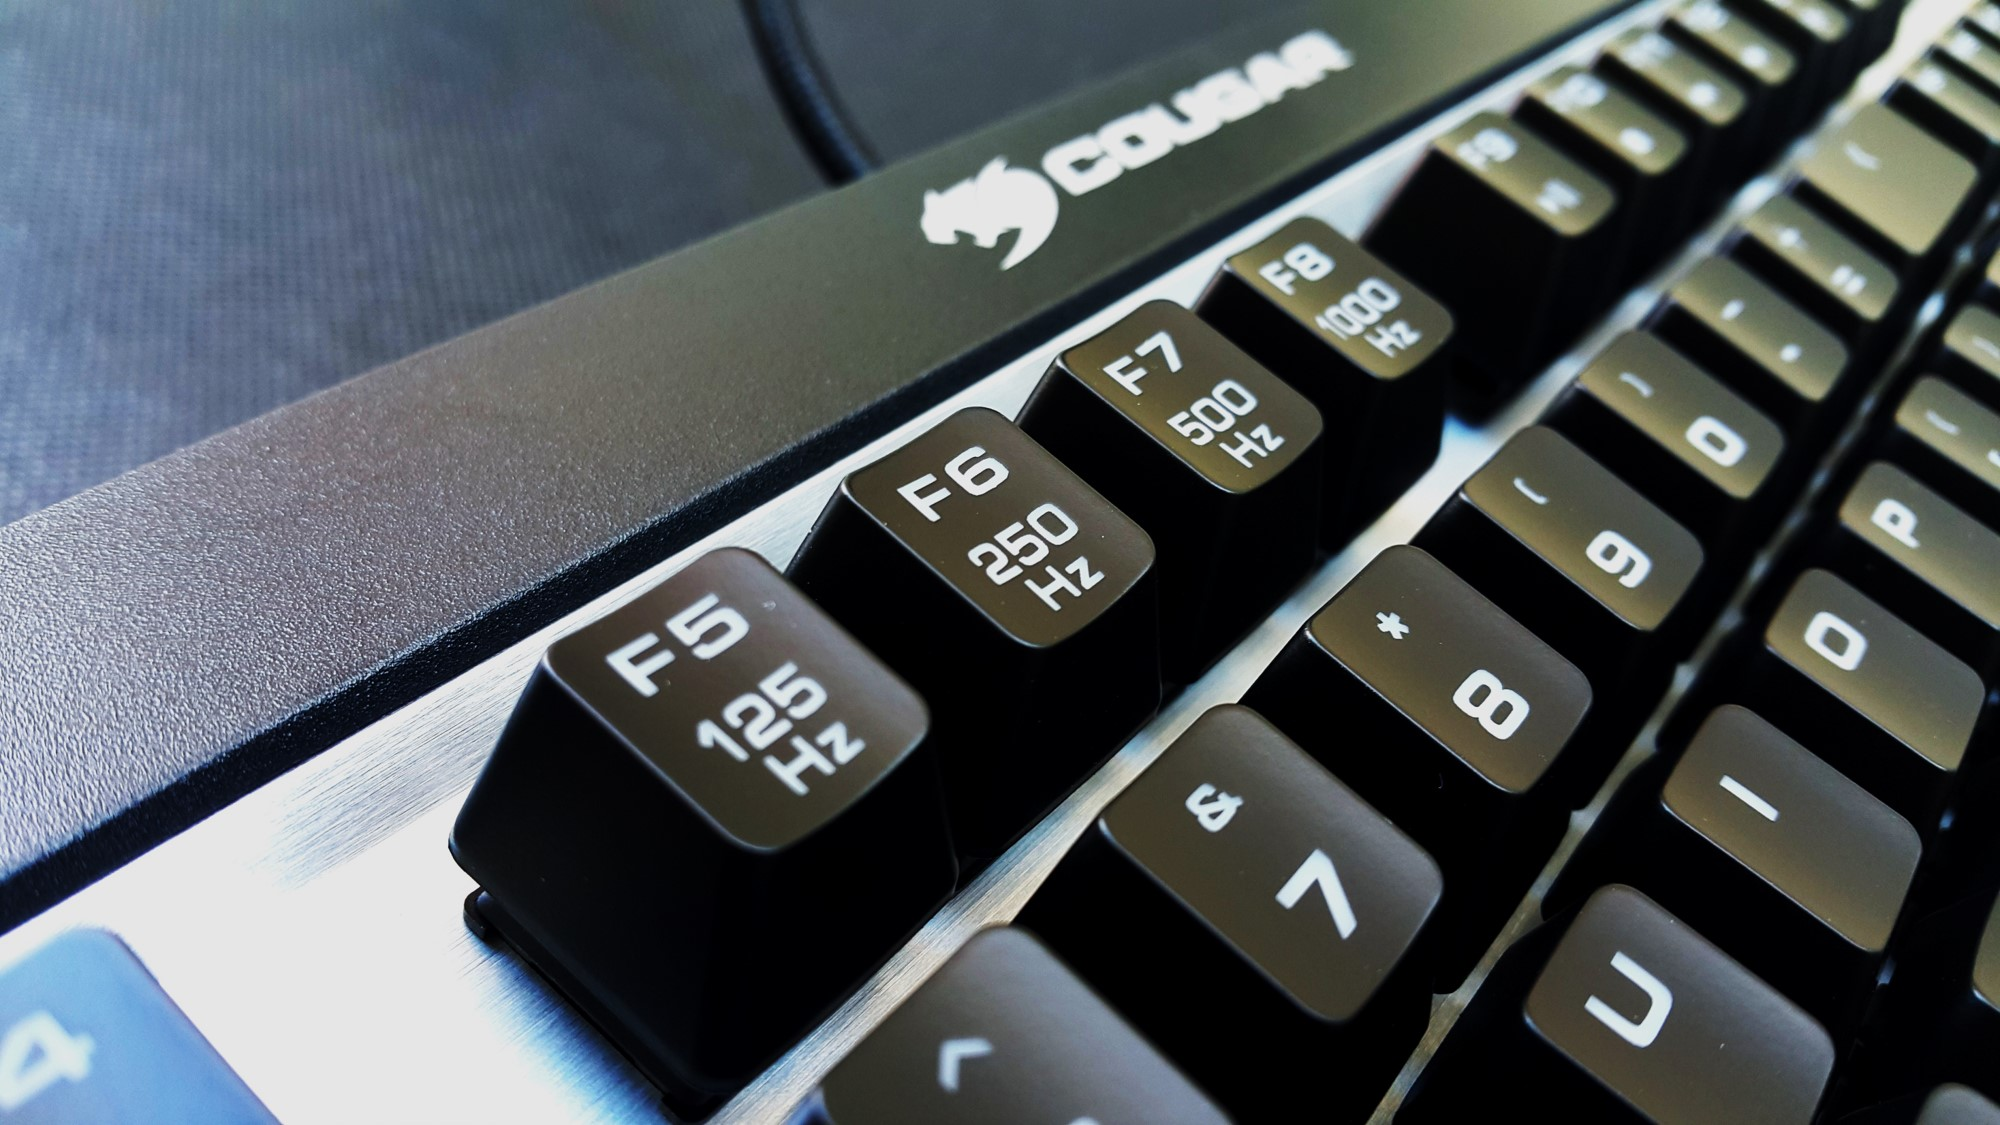 12- Cougar Attack X3 Mechanical Keyboard Polling Rate Buttons